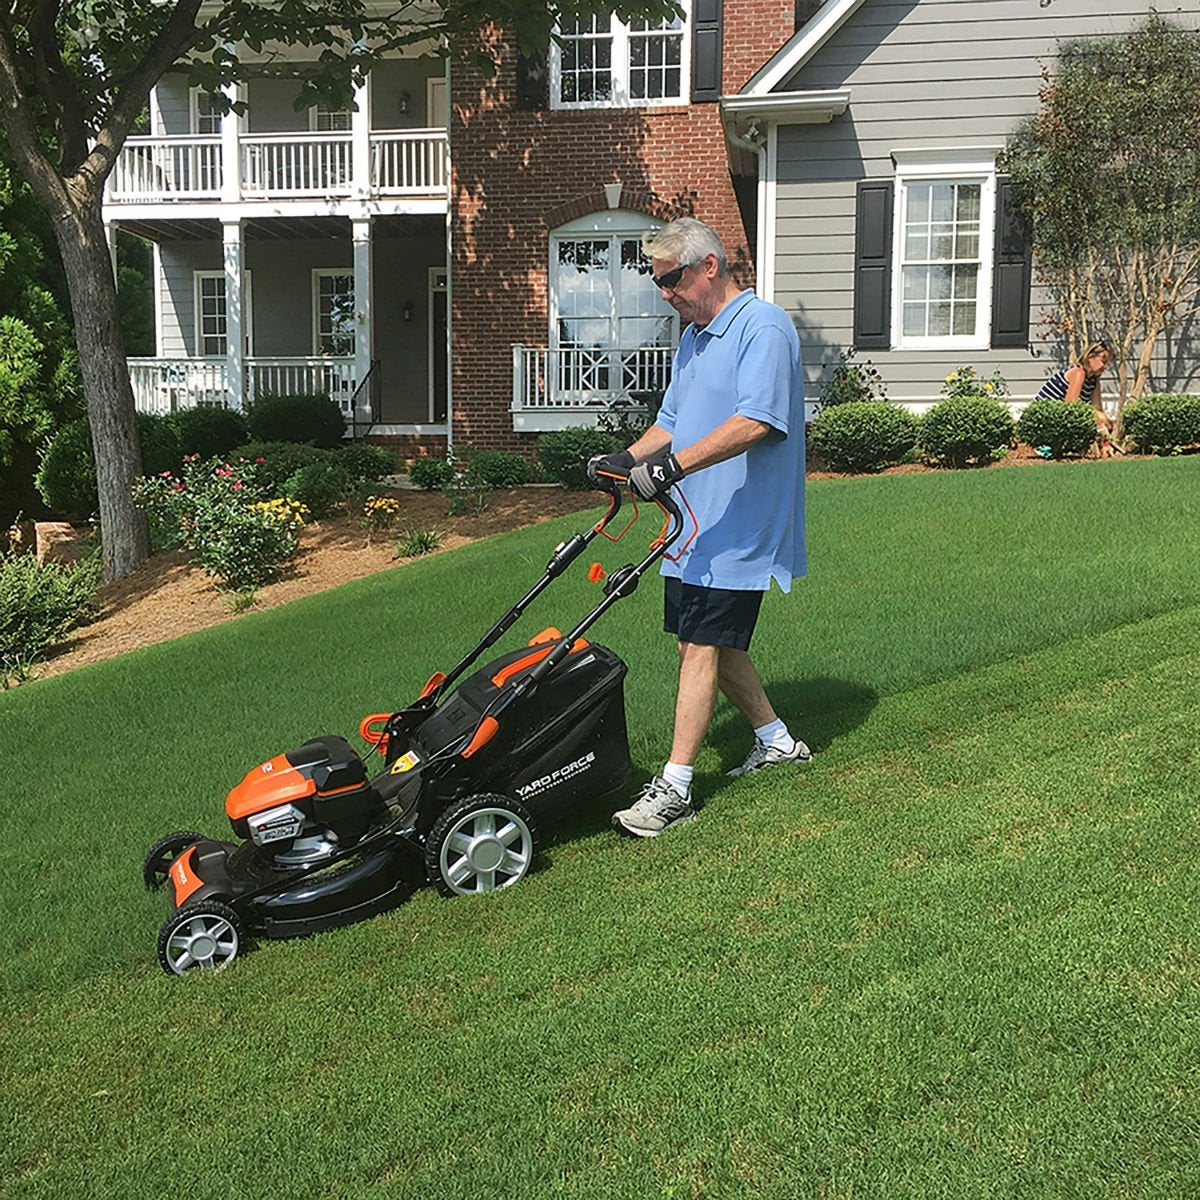 Best Electric Mower for Medium- to Large Yards: YARD FORCE 22-inch Cordless Mower